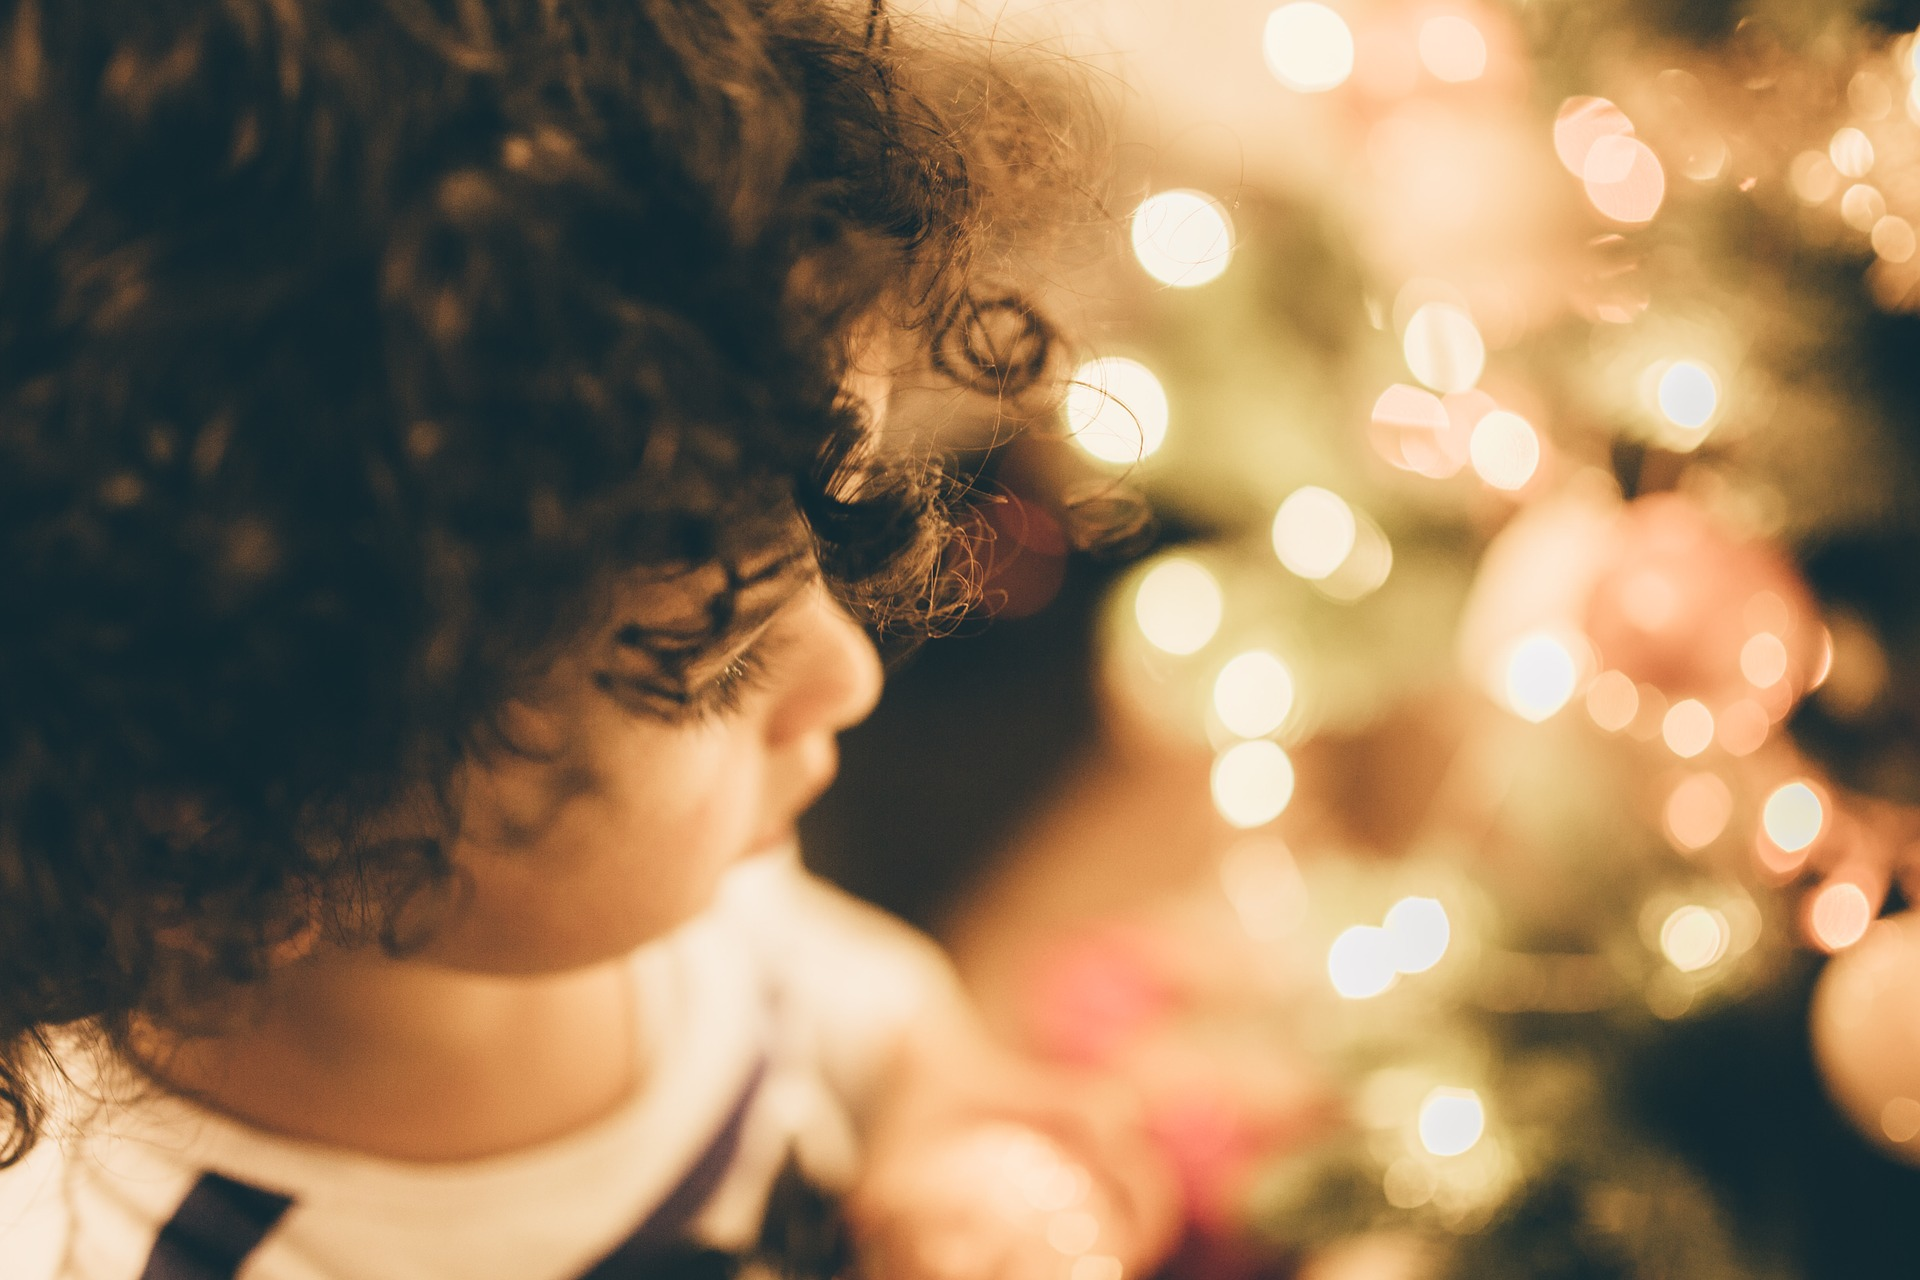 Let the Holidays Sparkle for Foster Youth!